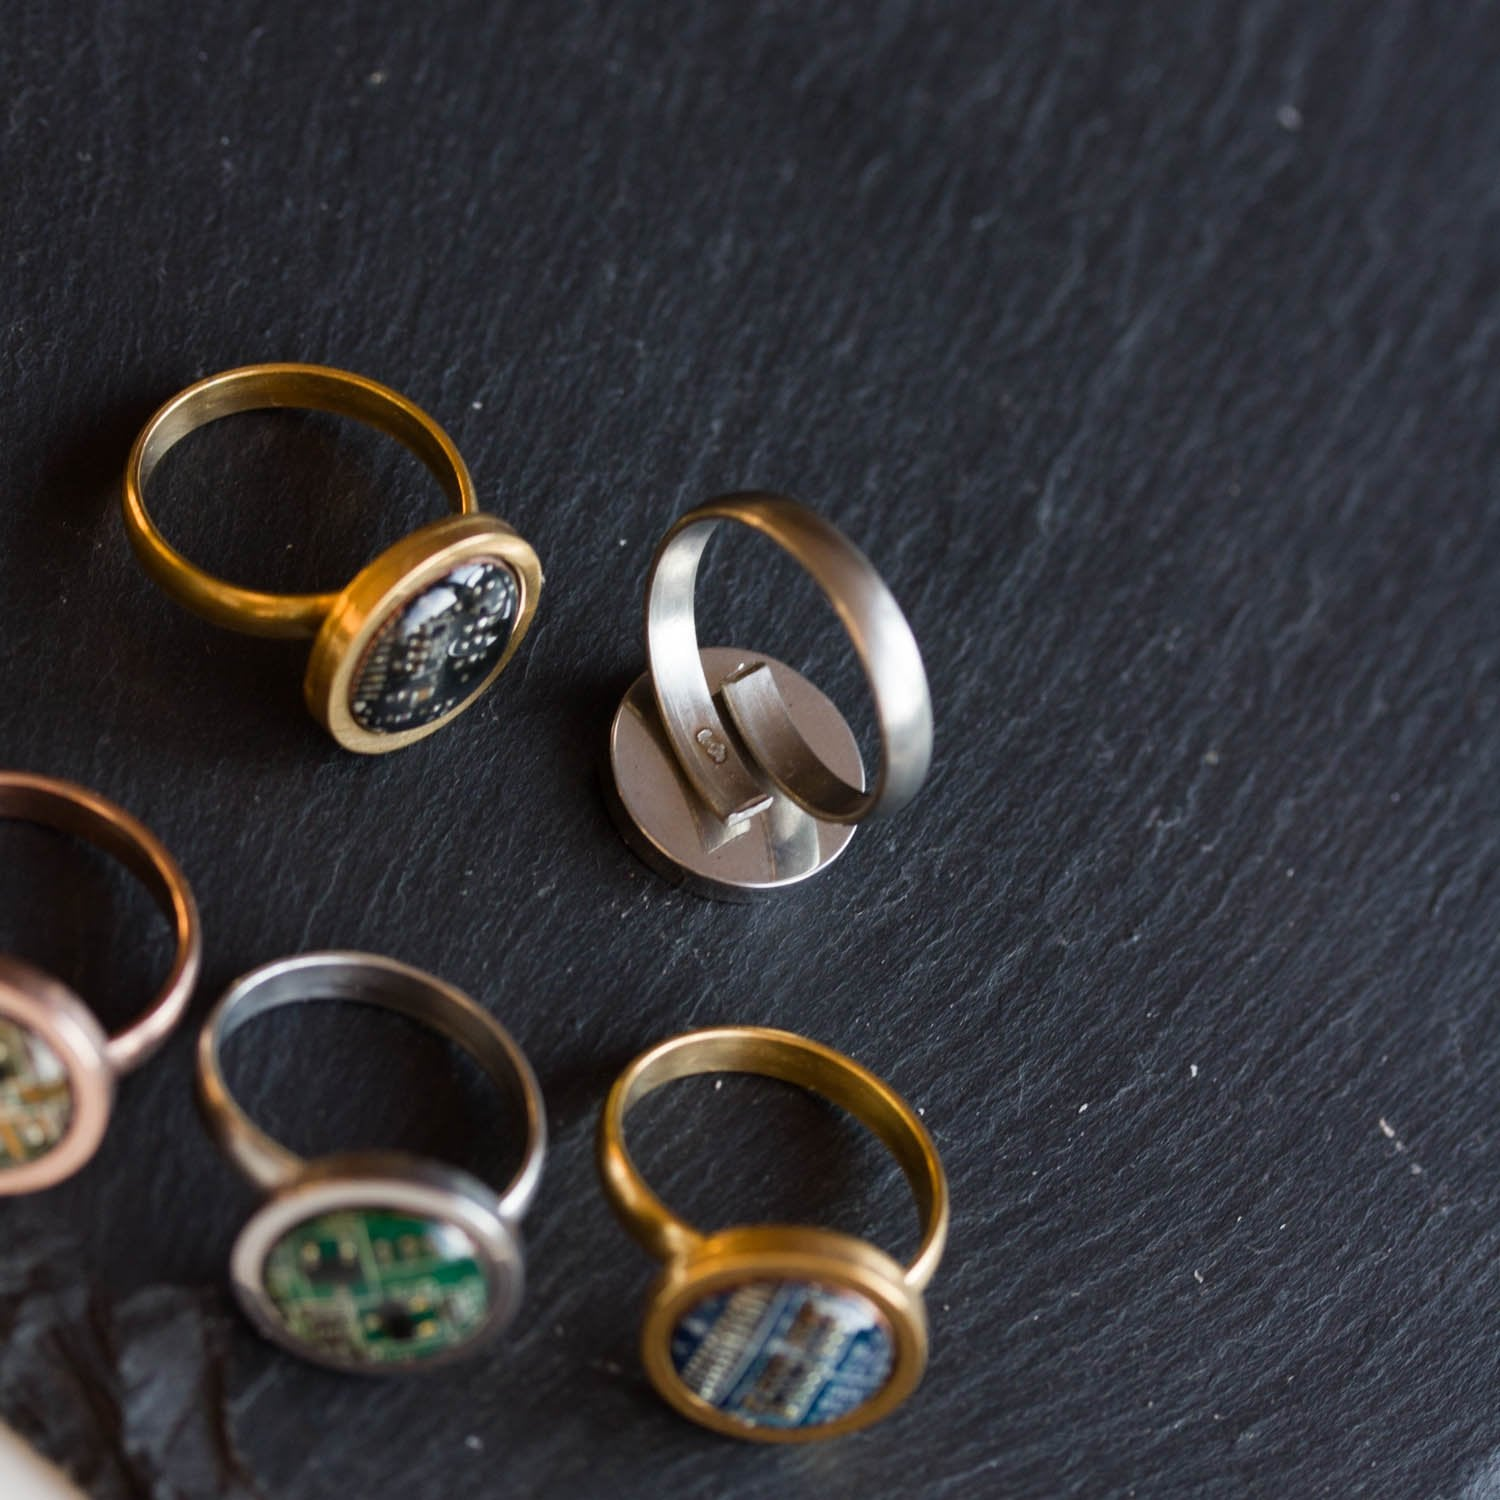 Geeky ring with circuit board piece, 12 mm